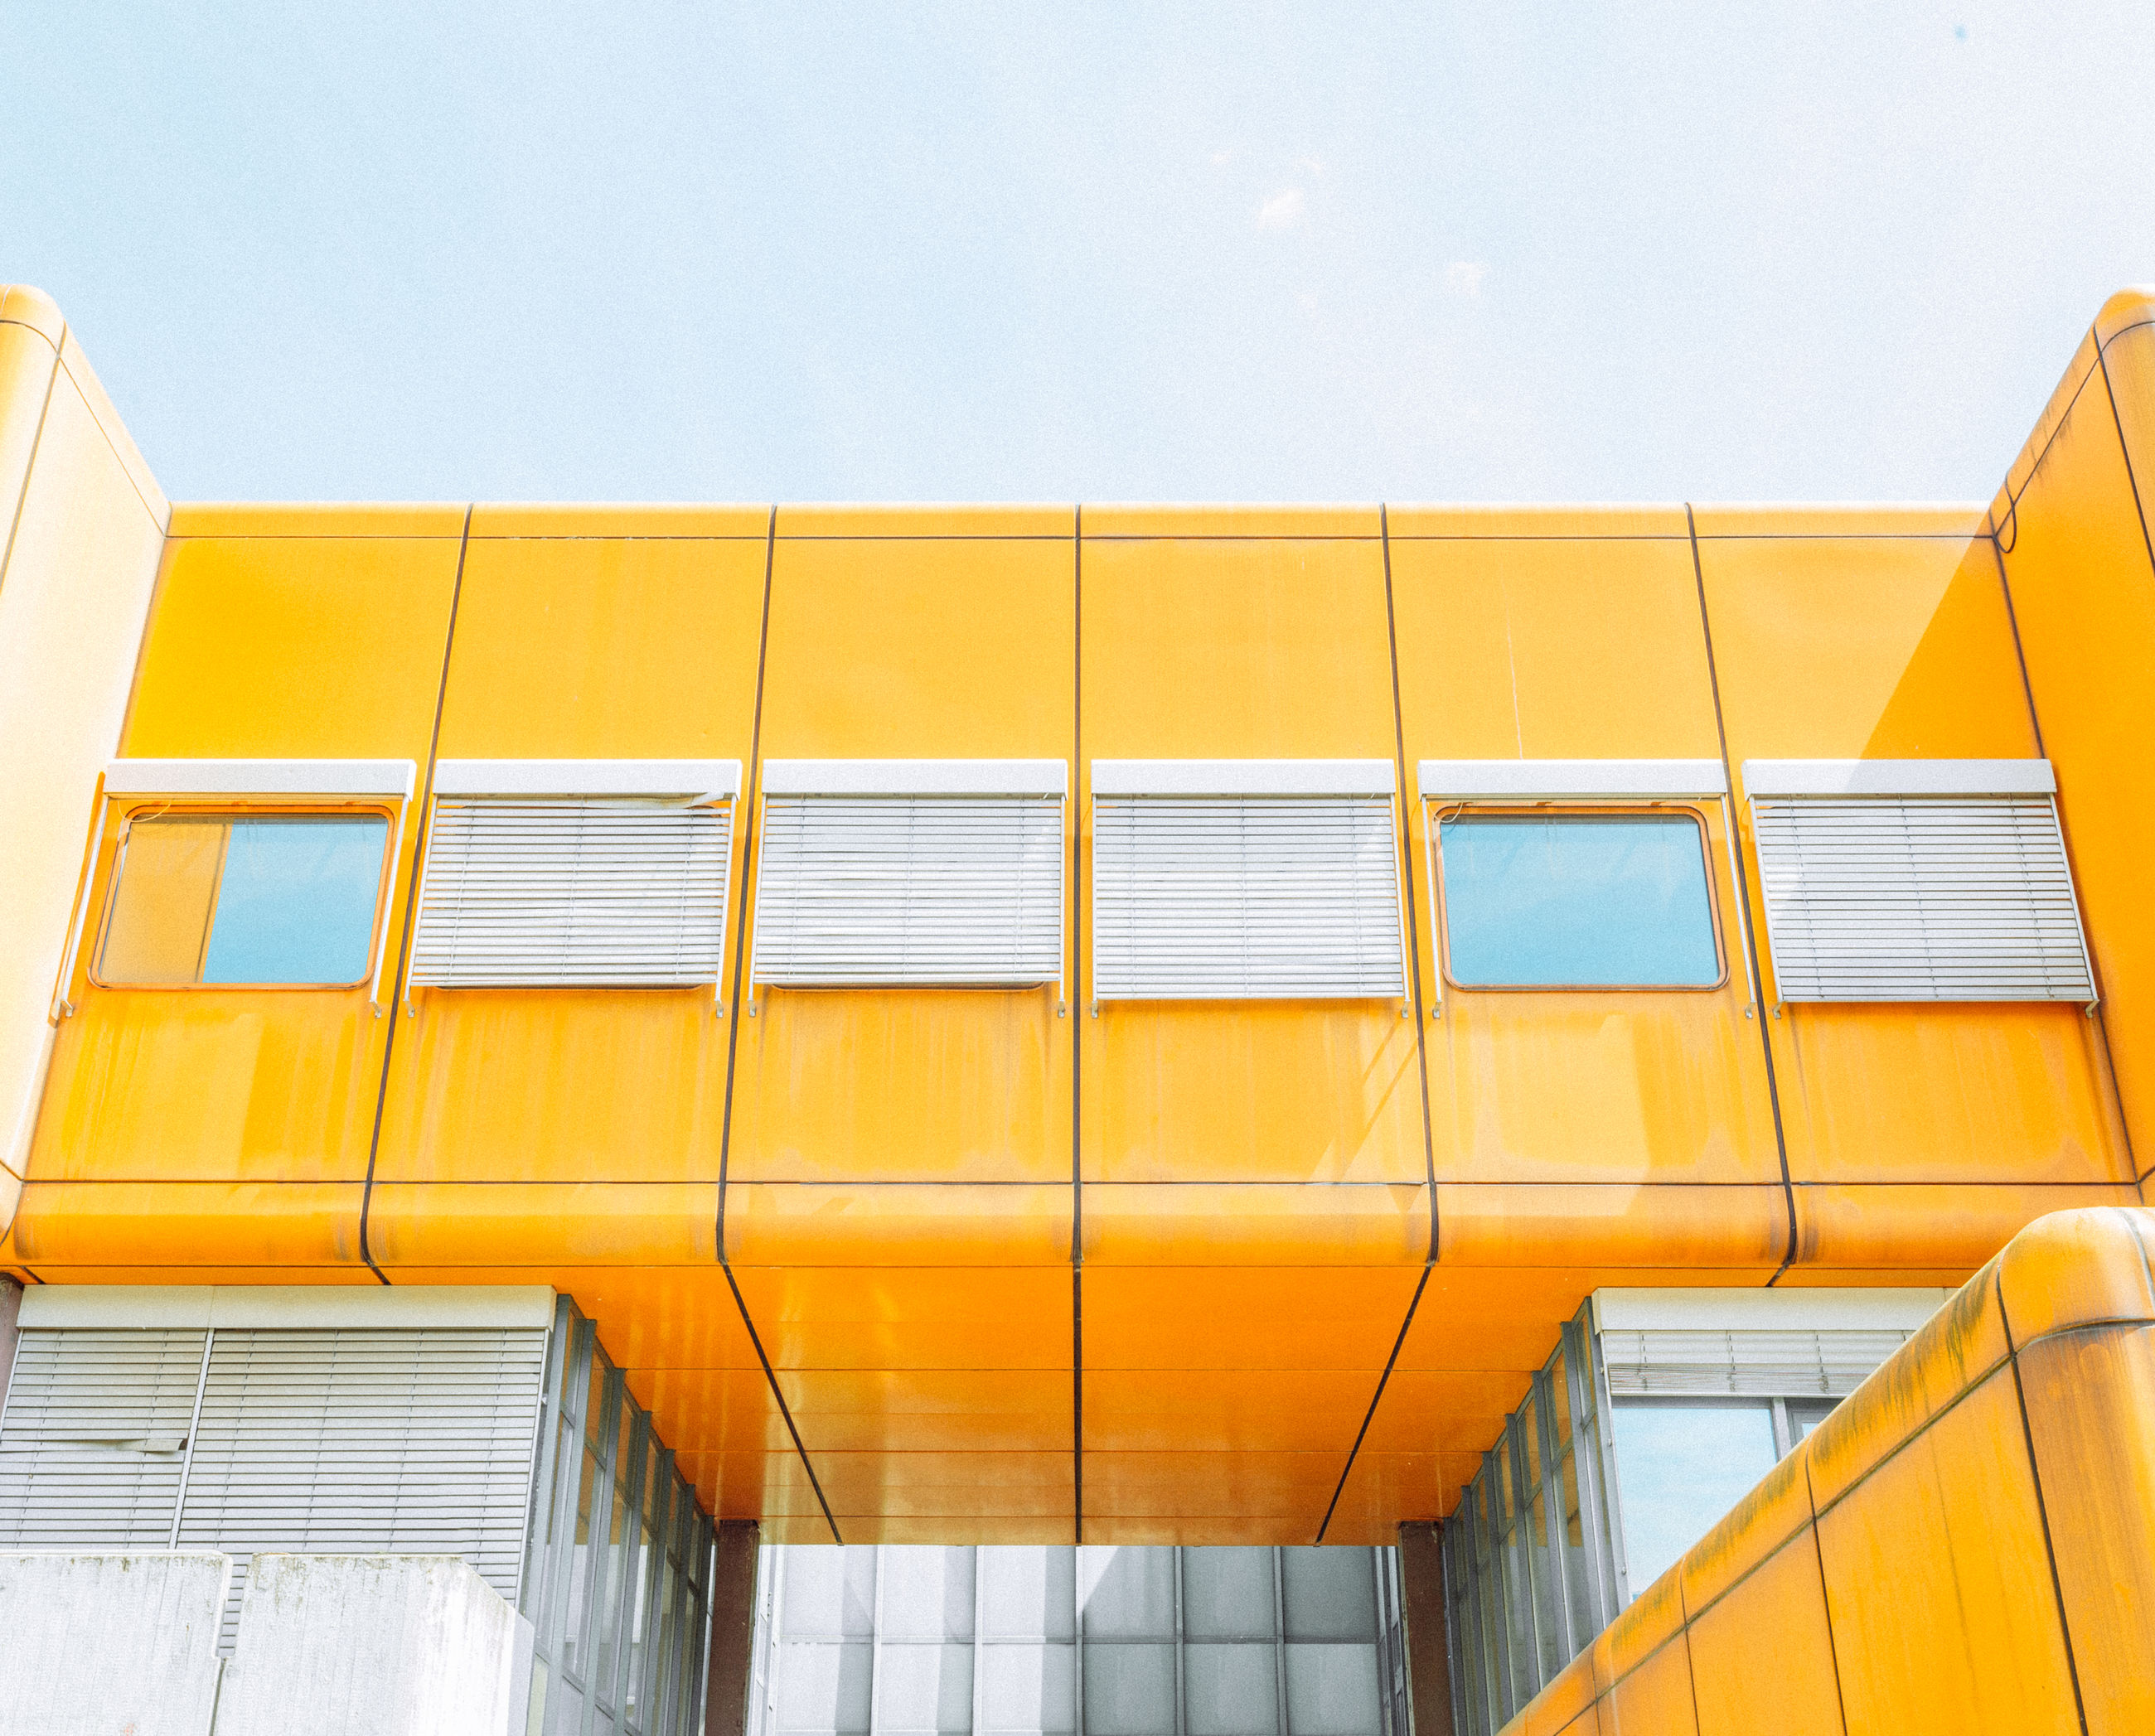 architecture, yellow, facade, built structure, building exterior, no people, low angle view, sky, building, day, outdoors, wall - building feature, nature, window, orange color, pattern, glass, city, industry